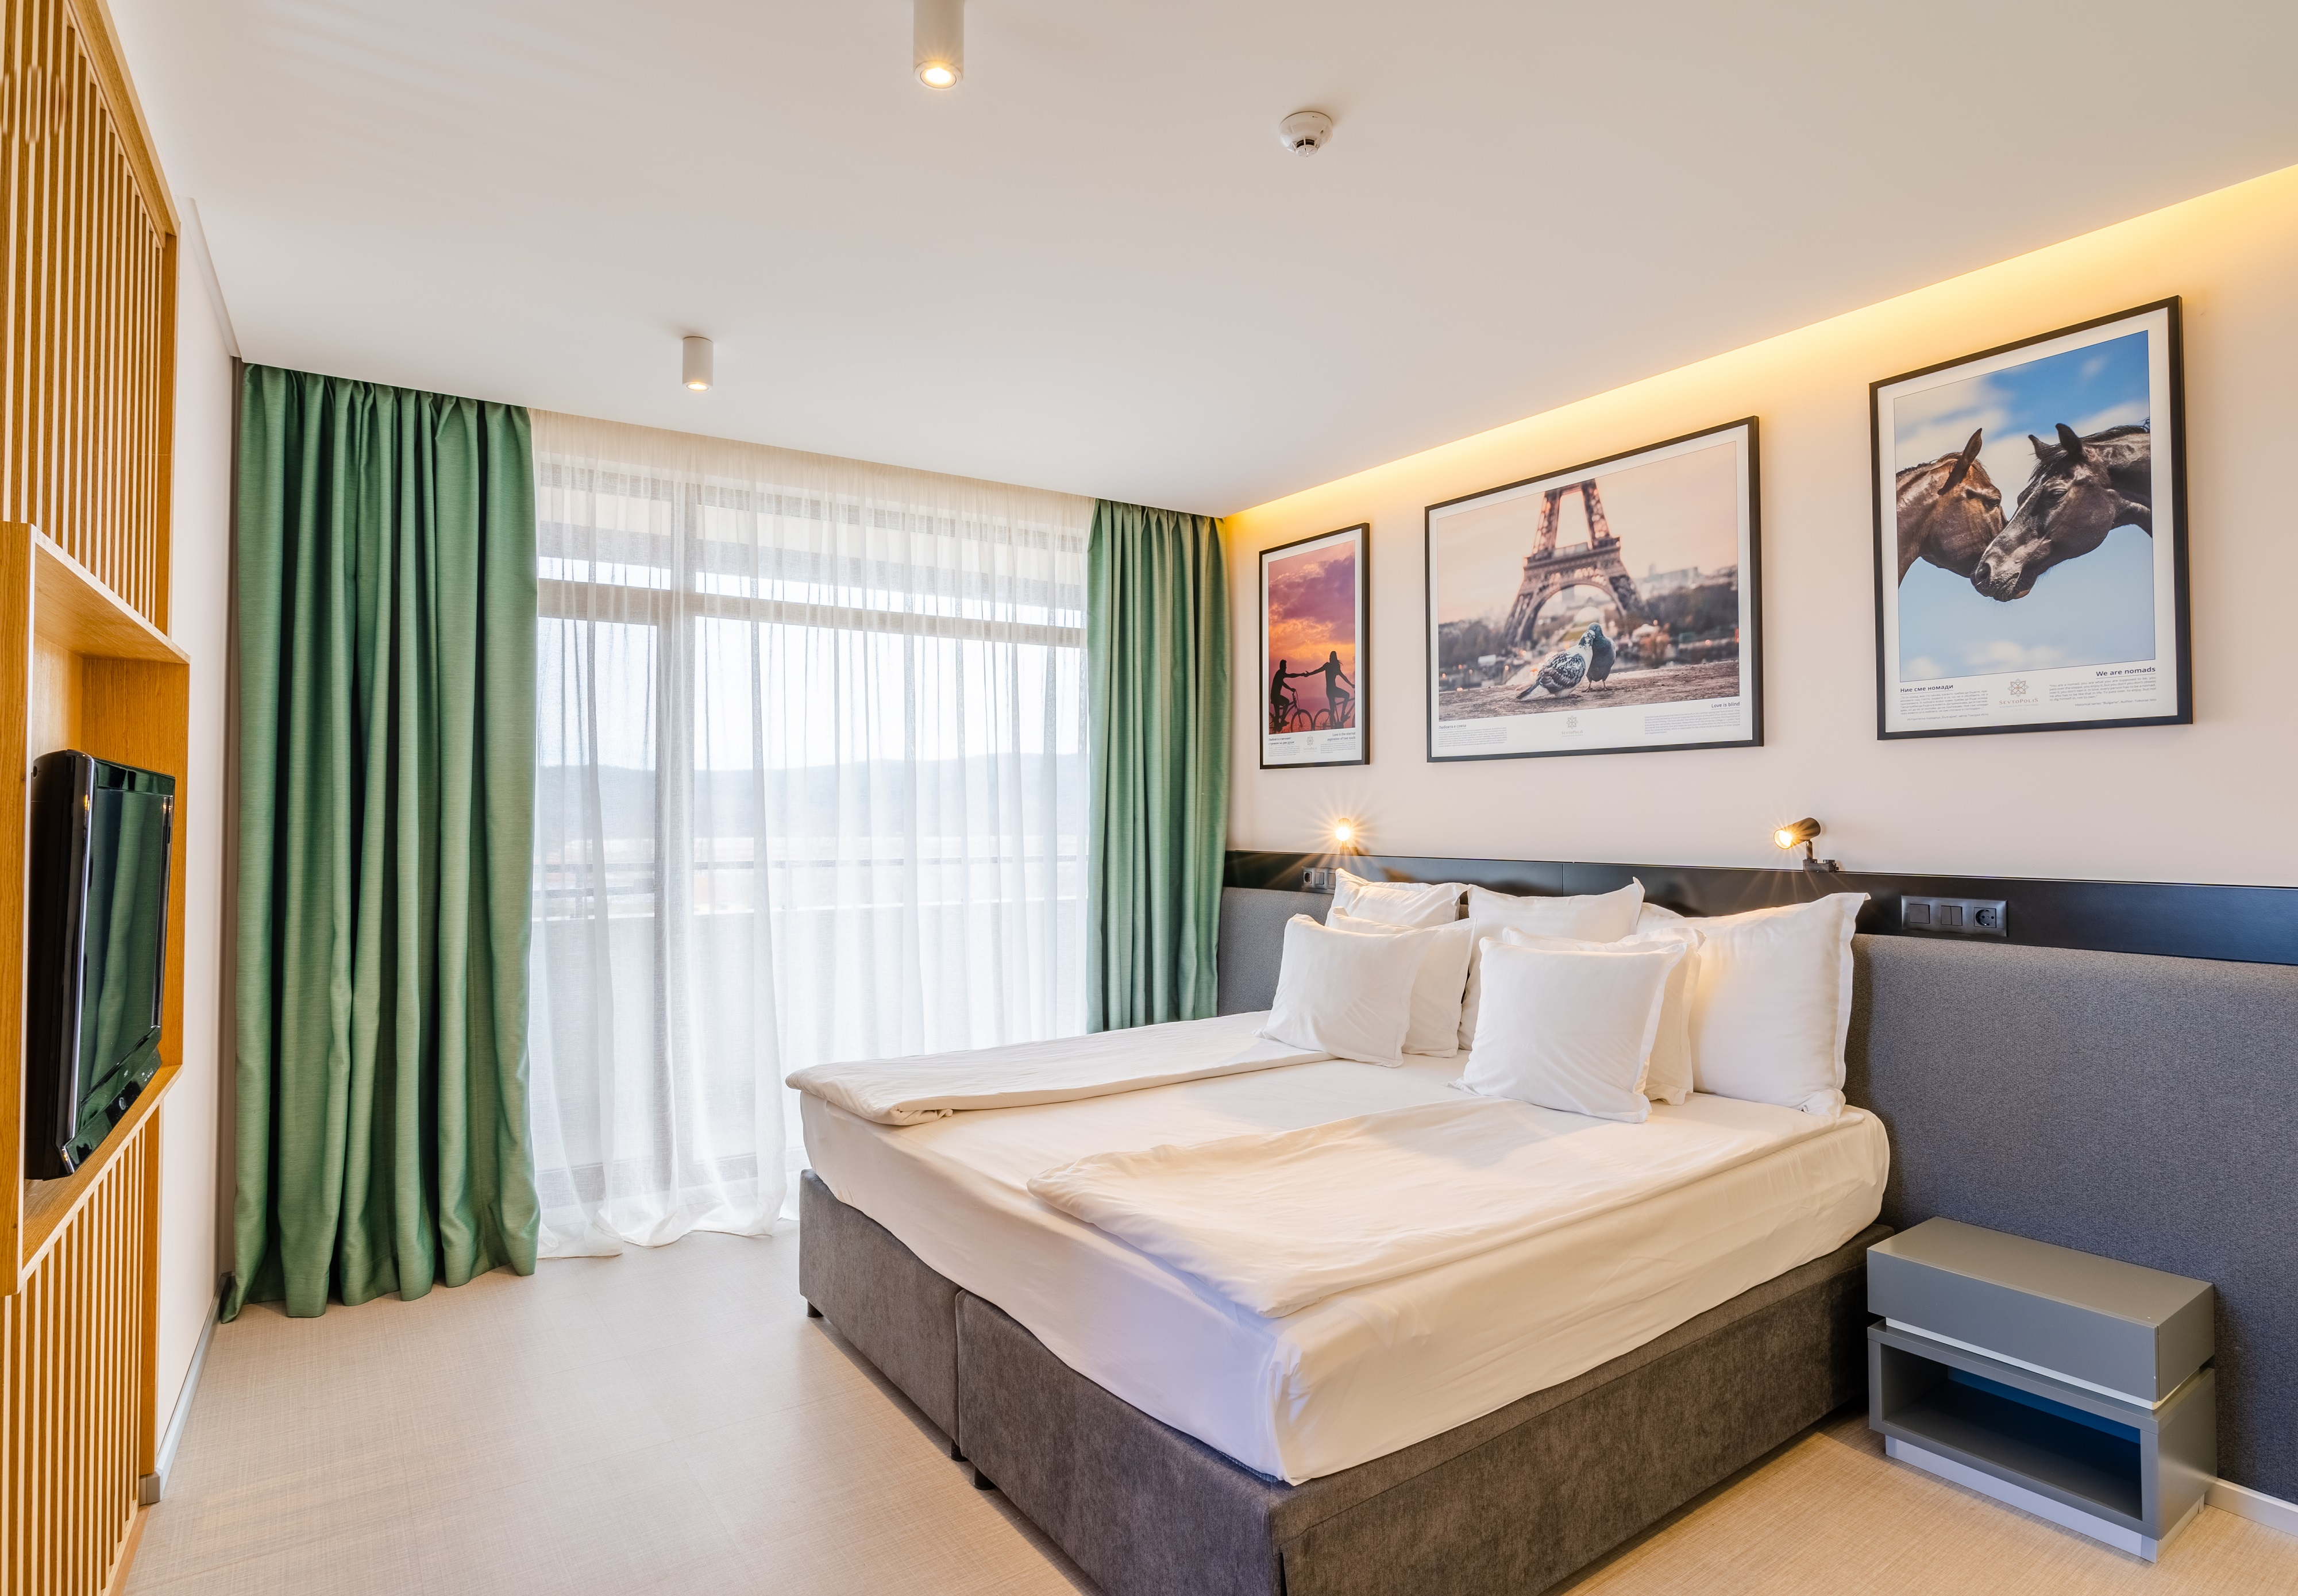 Sevtopolis_Medical_and_SPA_Hotel_Apartment_Bedroom_1_rs.jpg